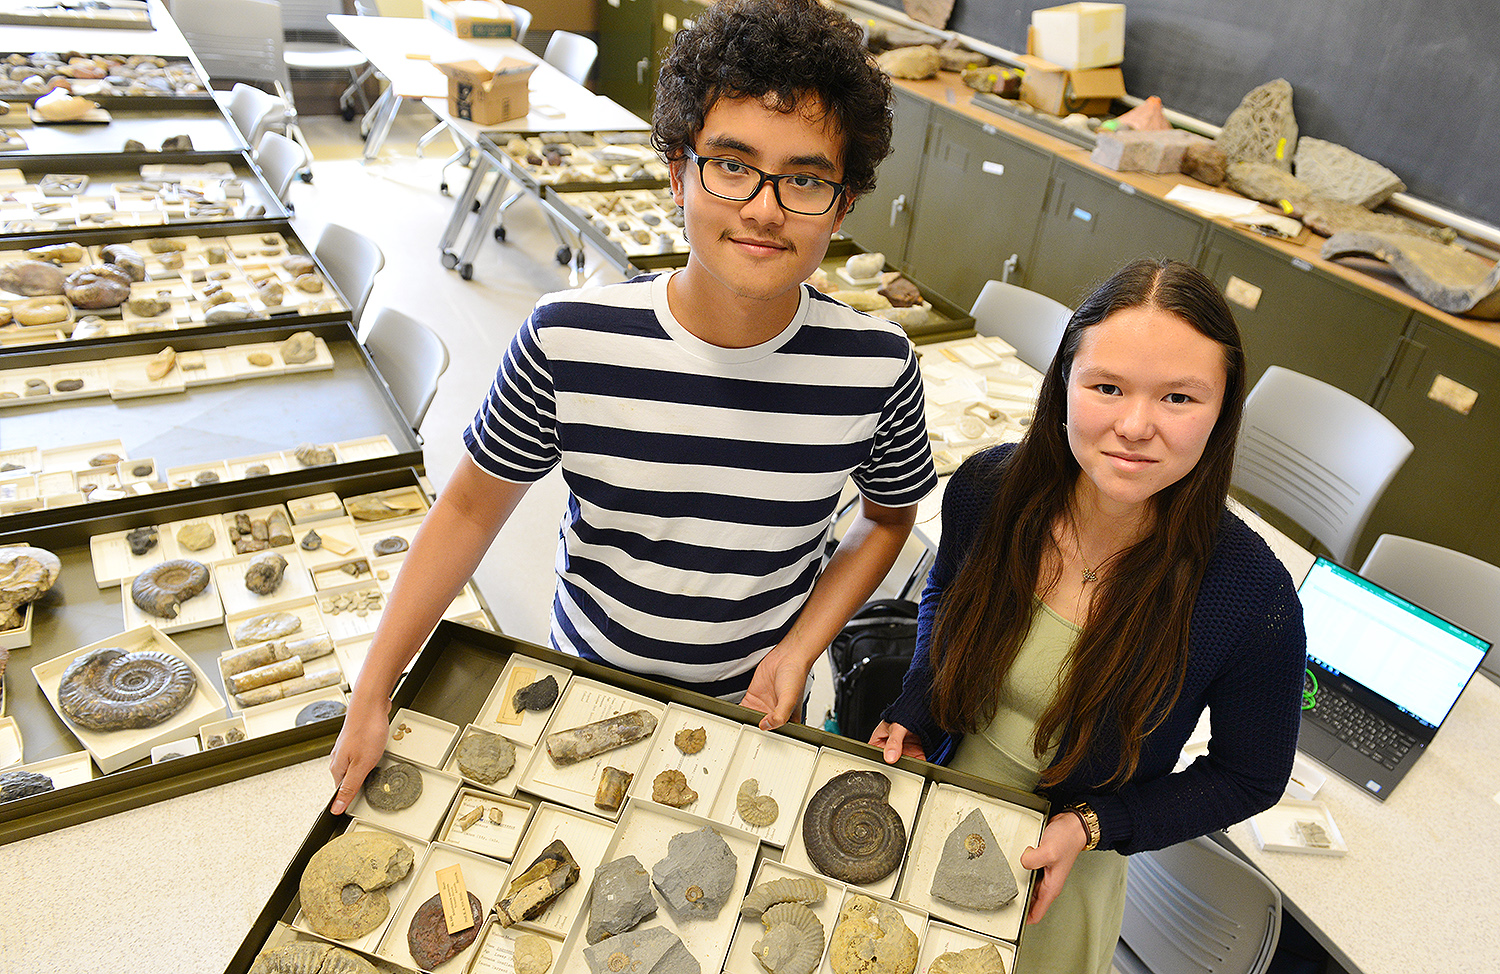 """Sanjirat """"Bright"""" Palakarn '20 and graduate student Melissa McKee '17 are discovering and cataloging thousands of fossils that are owned by Wesleyan.The fossils were once housed at theformer Wesleyan Museum, a natural history museum that occupied part of the Orange Judd Hall of Natural Sciences from 1871-1957. Once the museum closed, the fossils and other objects were displaced at various locations on campus."""